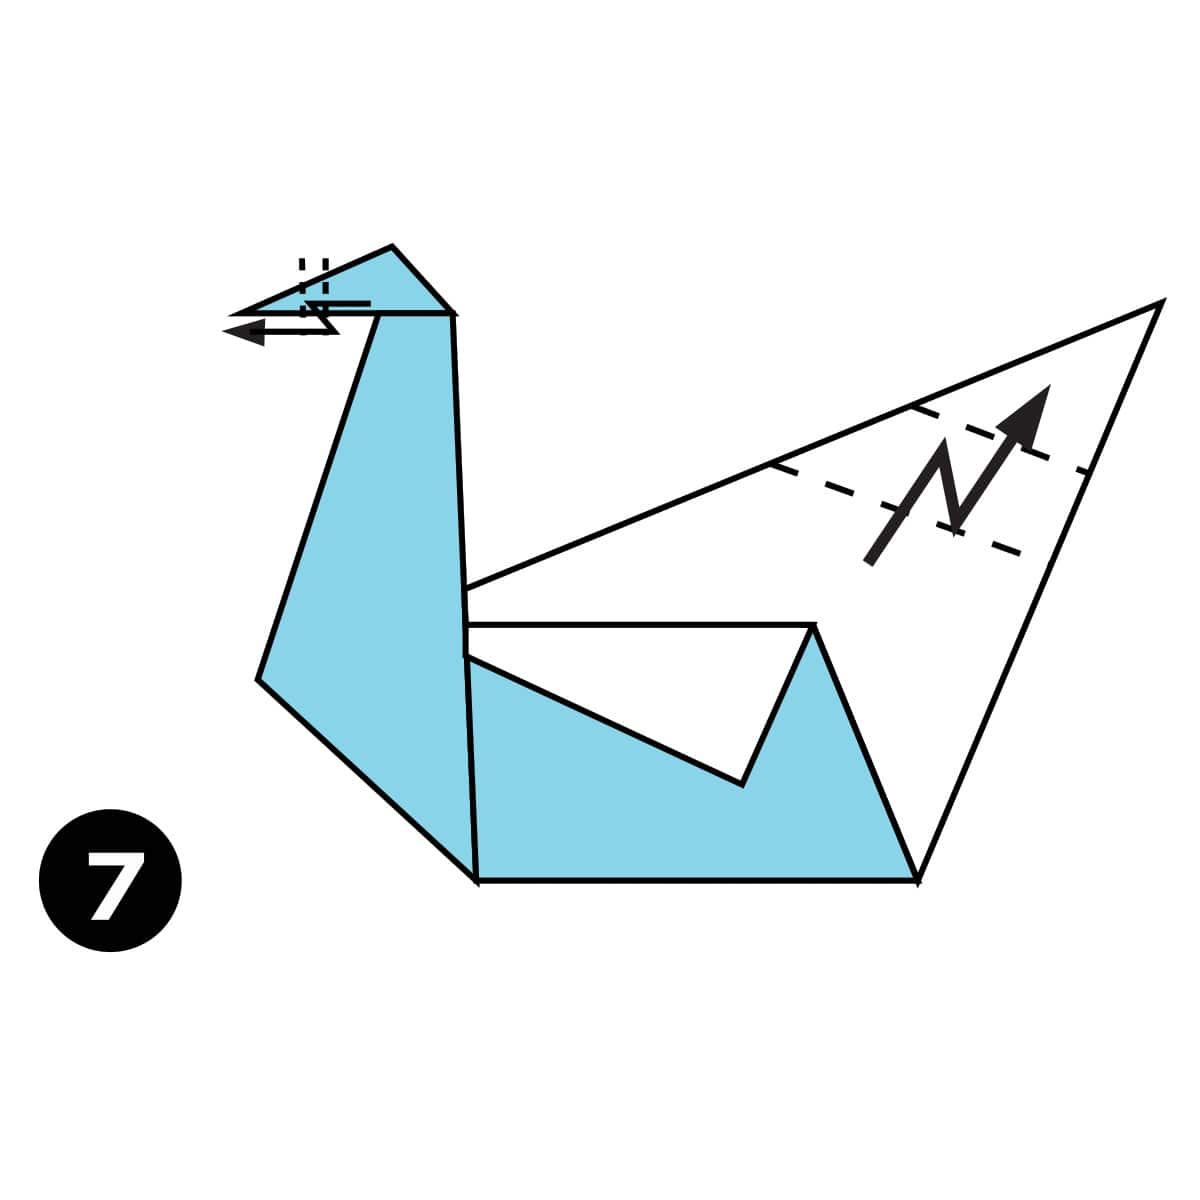 How To Make An Easy Origami Swan Pin Diagram On Pinterest Step 7